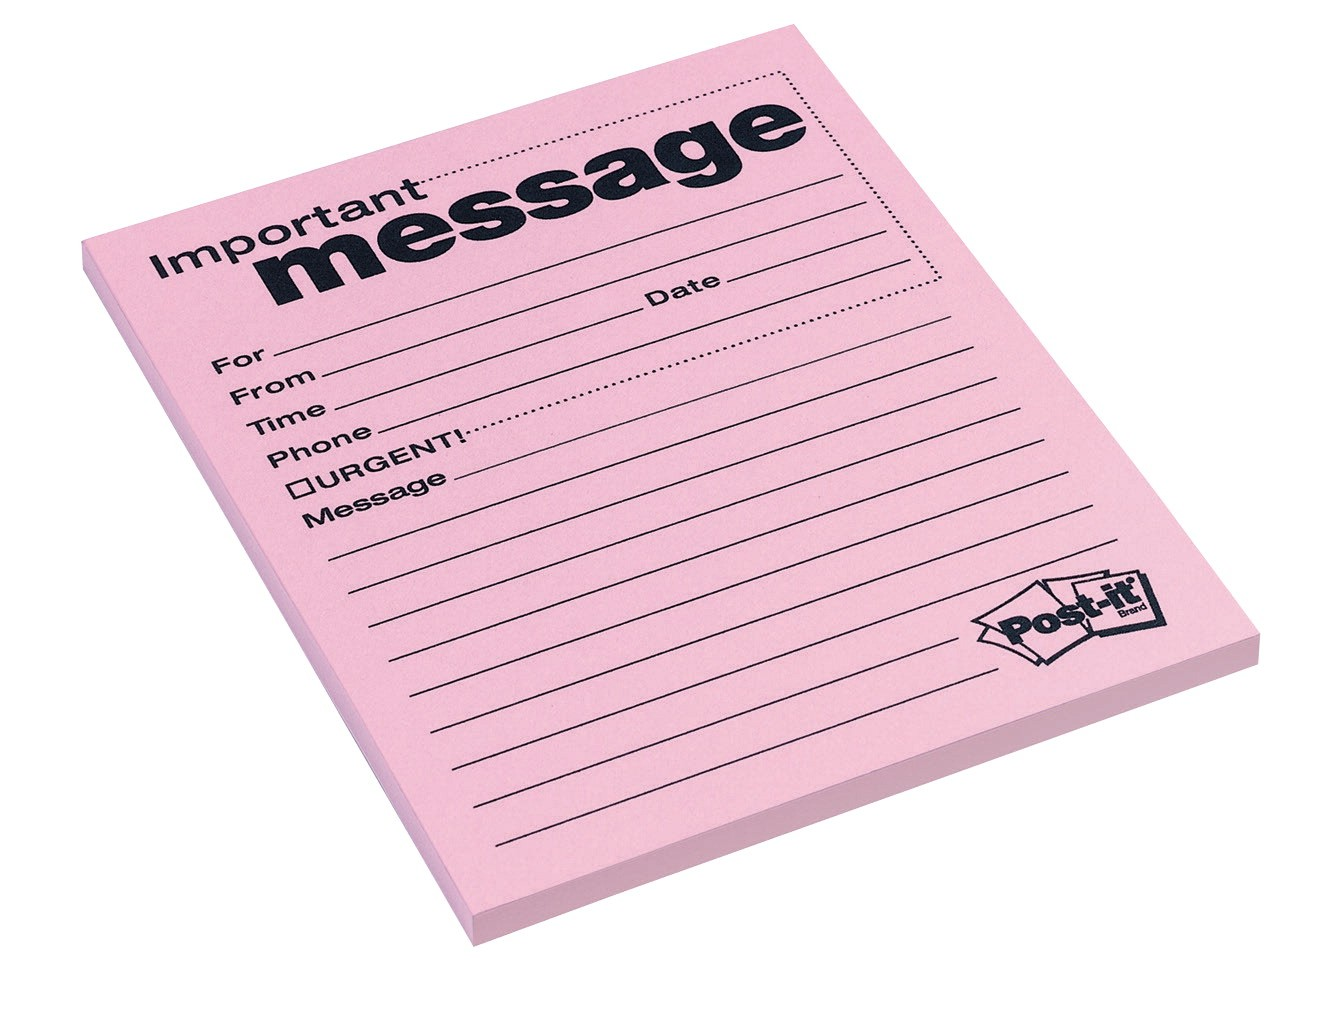 4 X 6 Post-it Telephone Message Pad, Pink - 50 Sheets/Pad